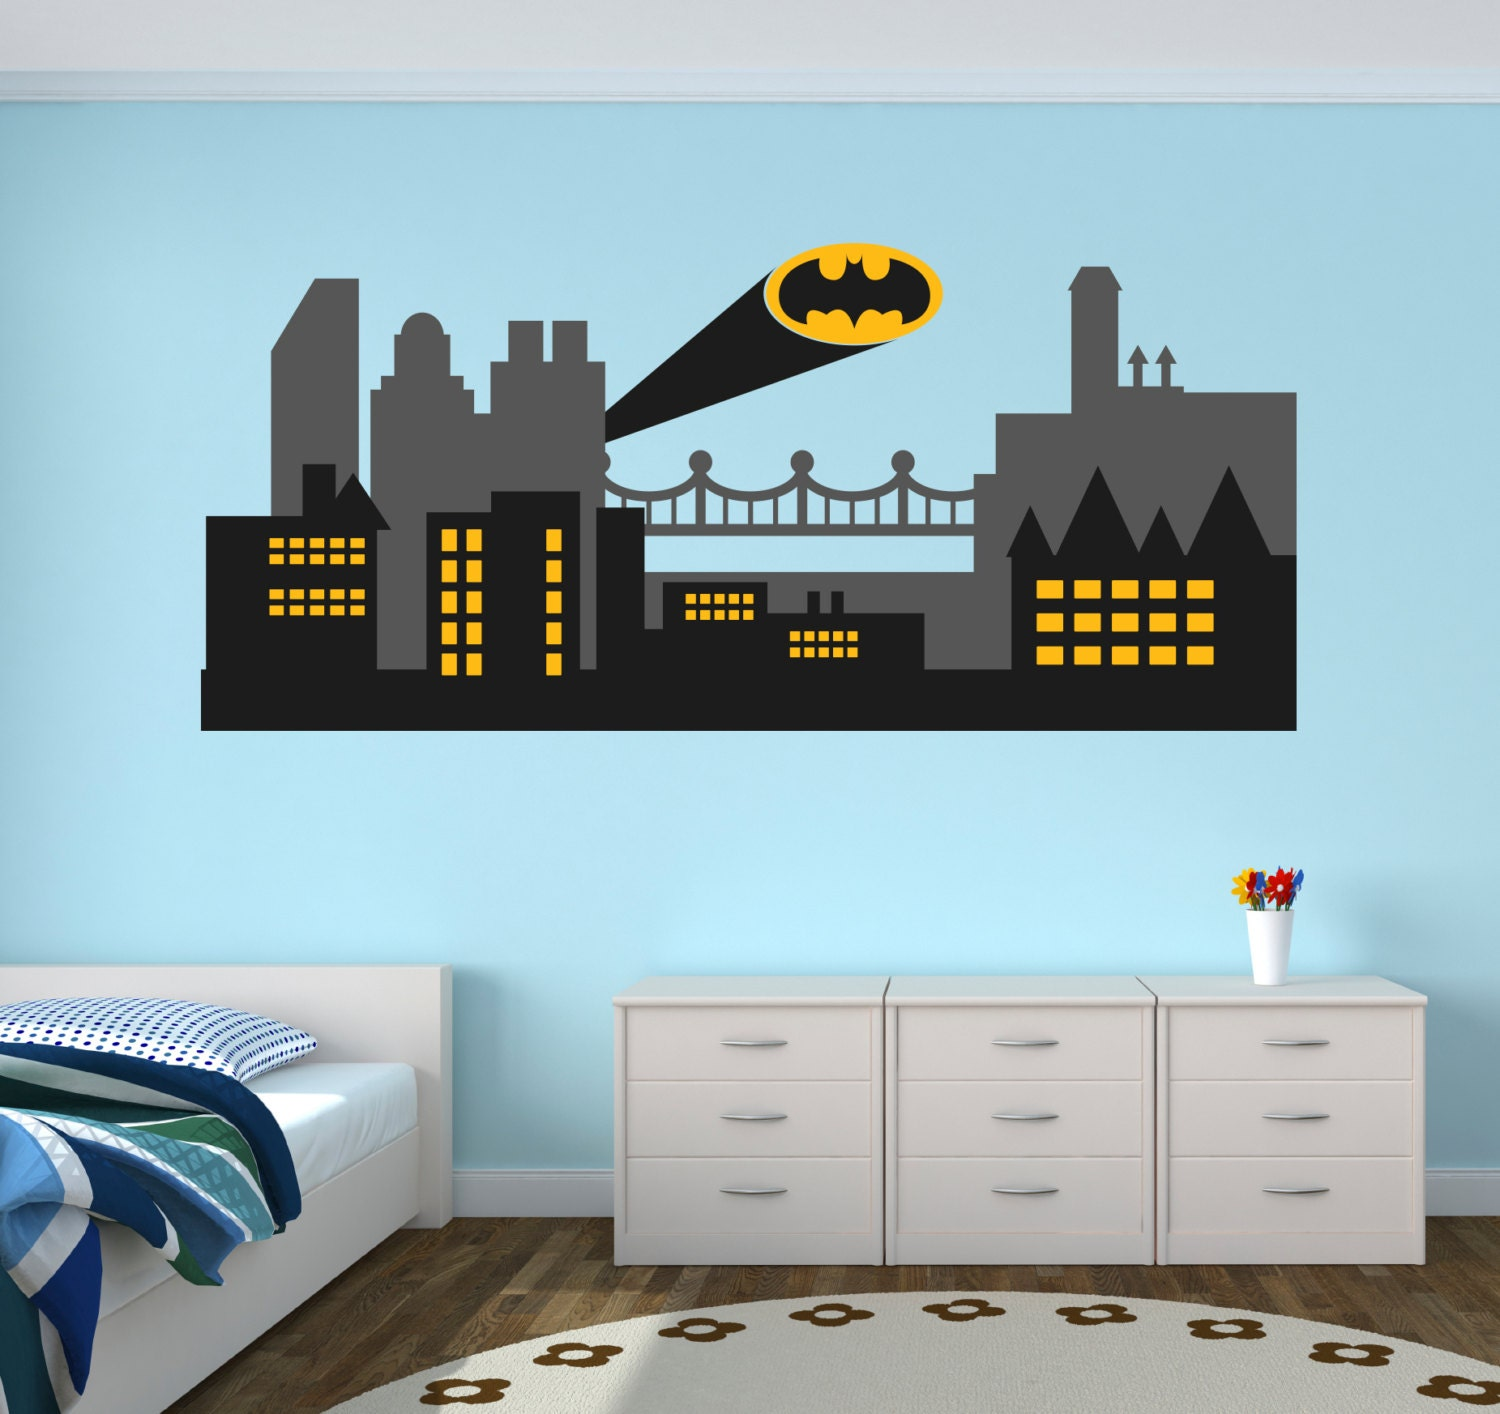 Gothic city wall decal batman gothic city skyline wall art zoom amipublicfo Image collections